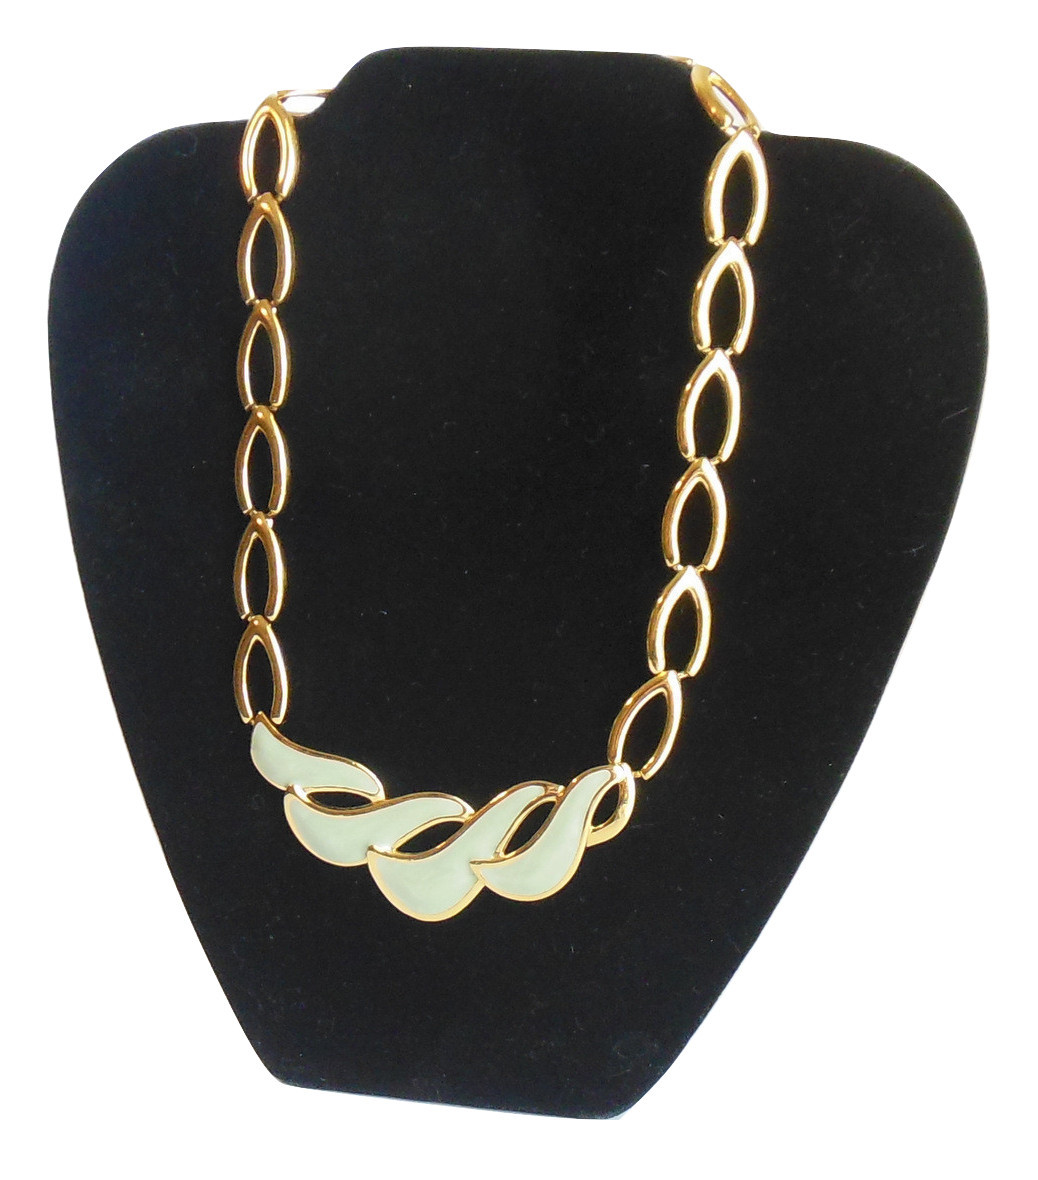 Vintage Napier Necklace Linked Gold Tone With Scooped Center Enamel Jade Green - $18.95